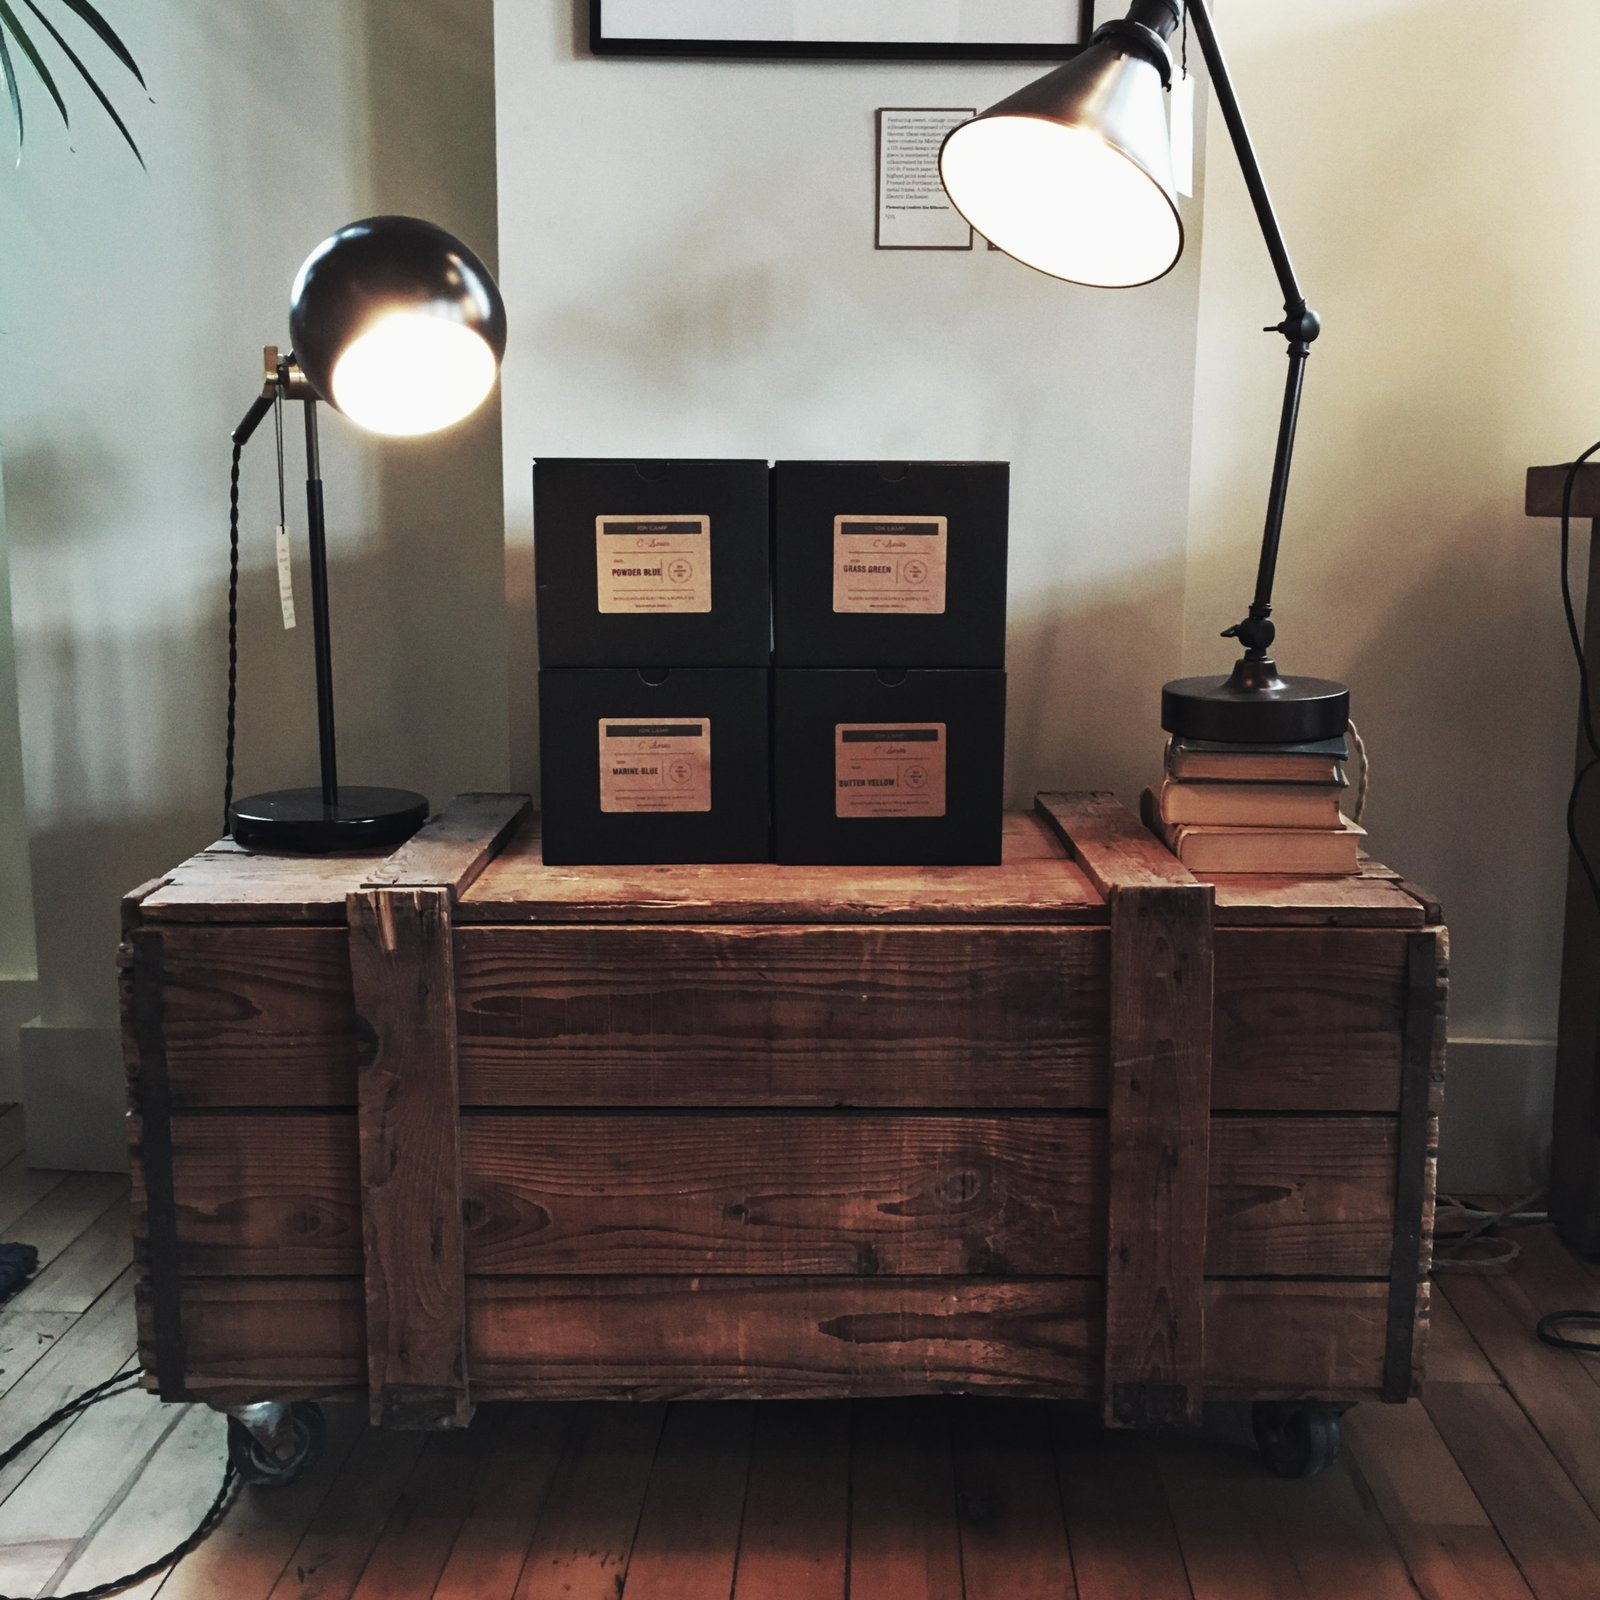 Lamps and an old create make for a stunning living room piece.